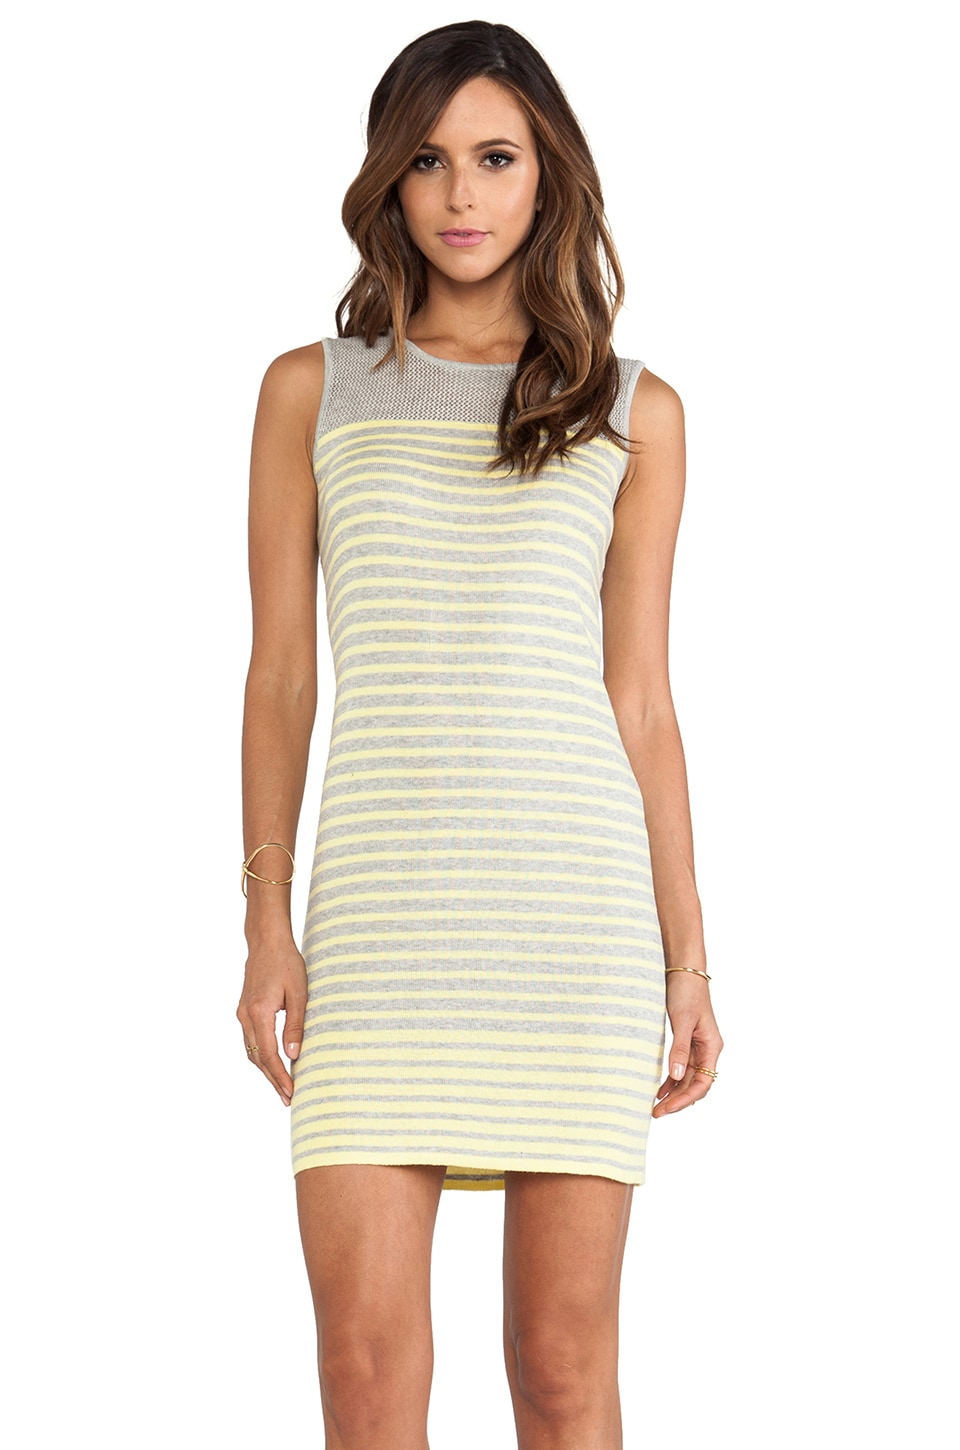 John & Jenn by Line Sophia Dahl Dress in Mellow Yellow